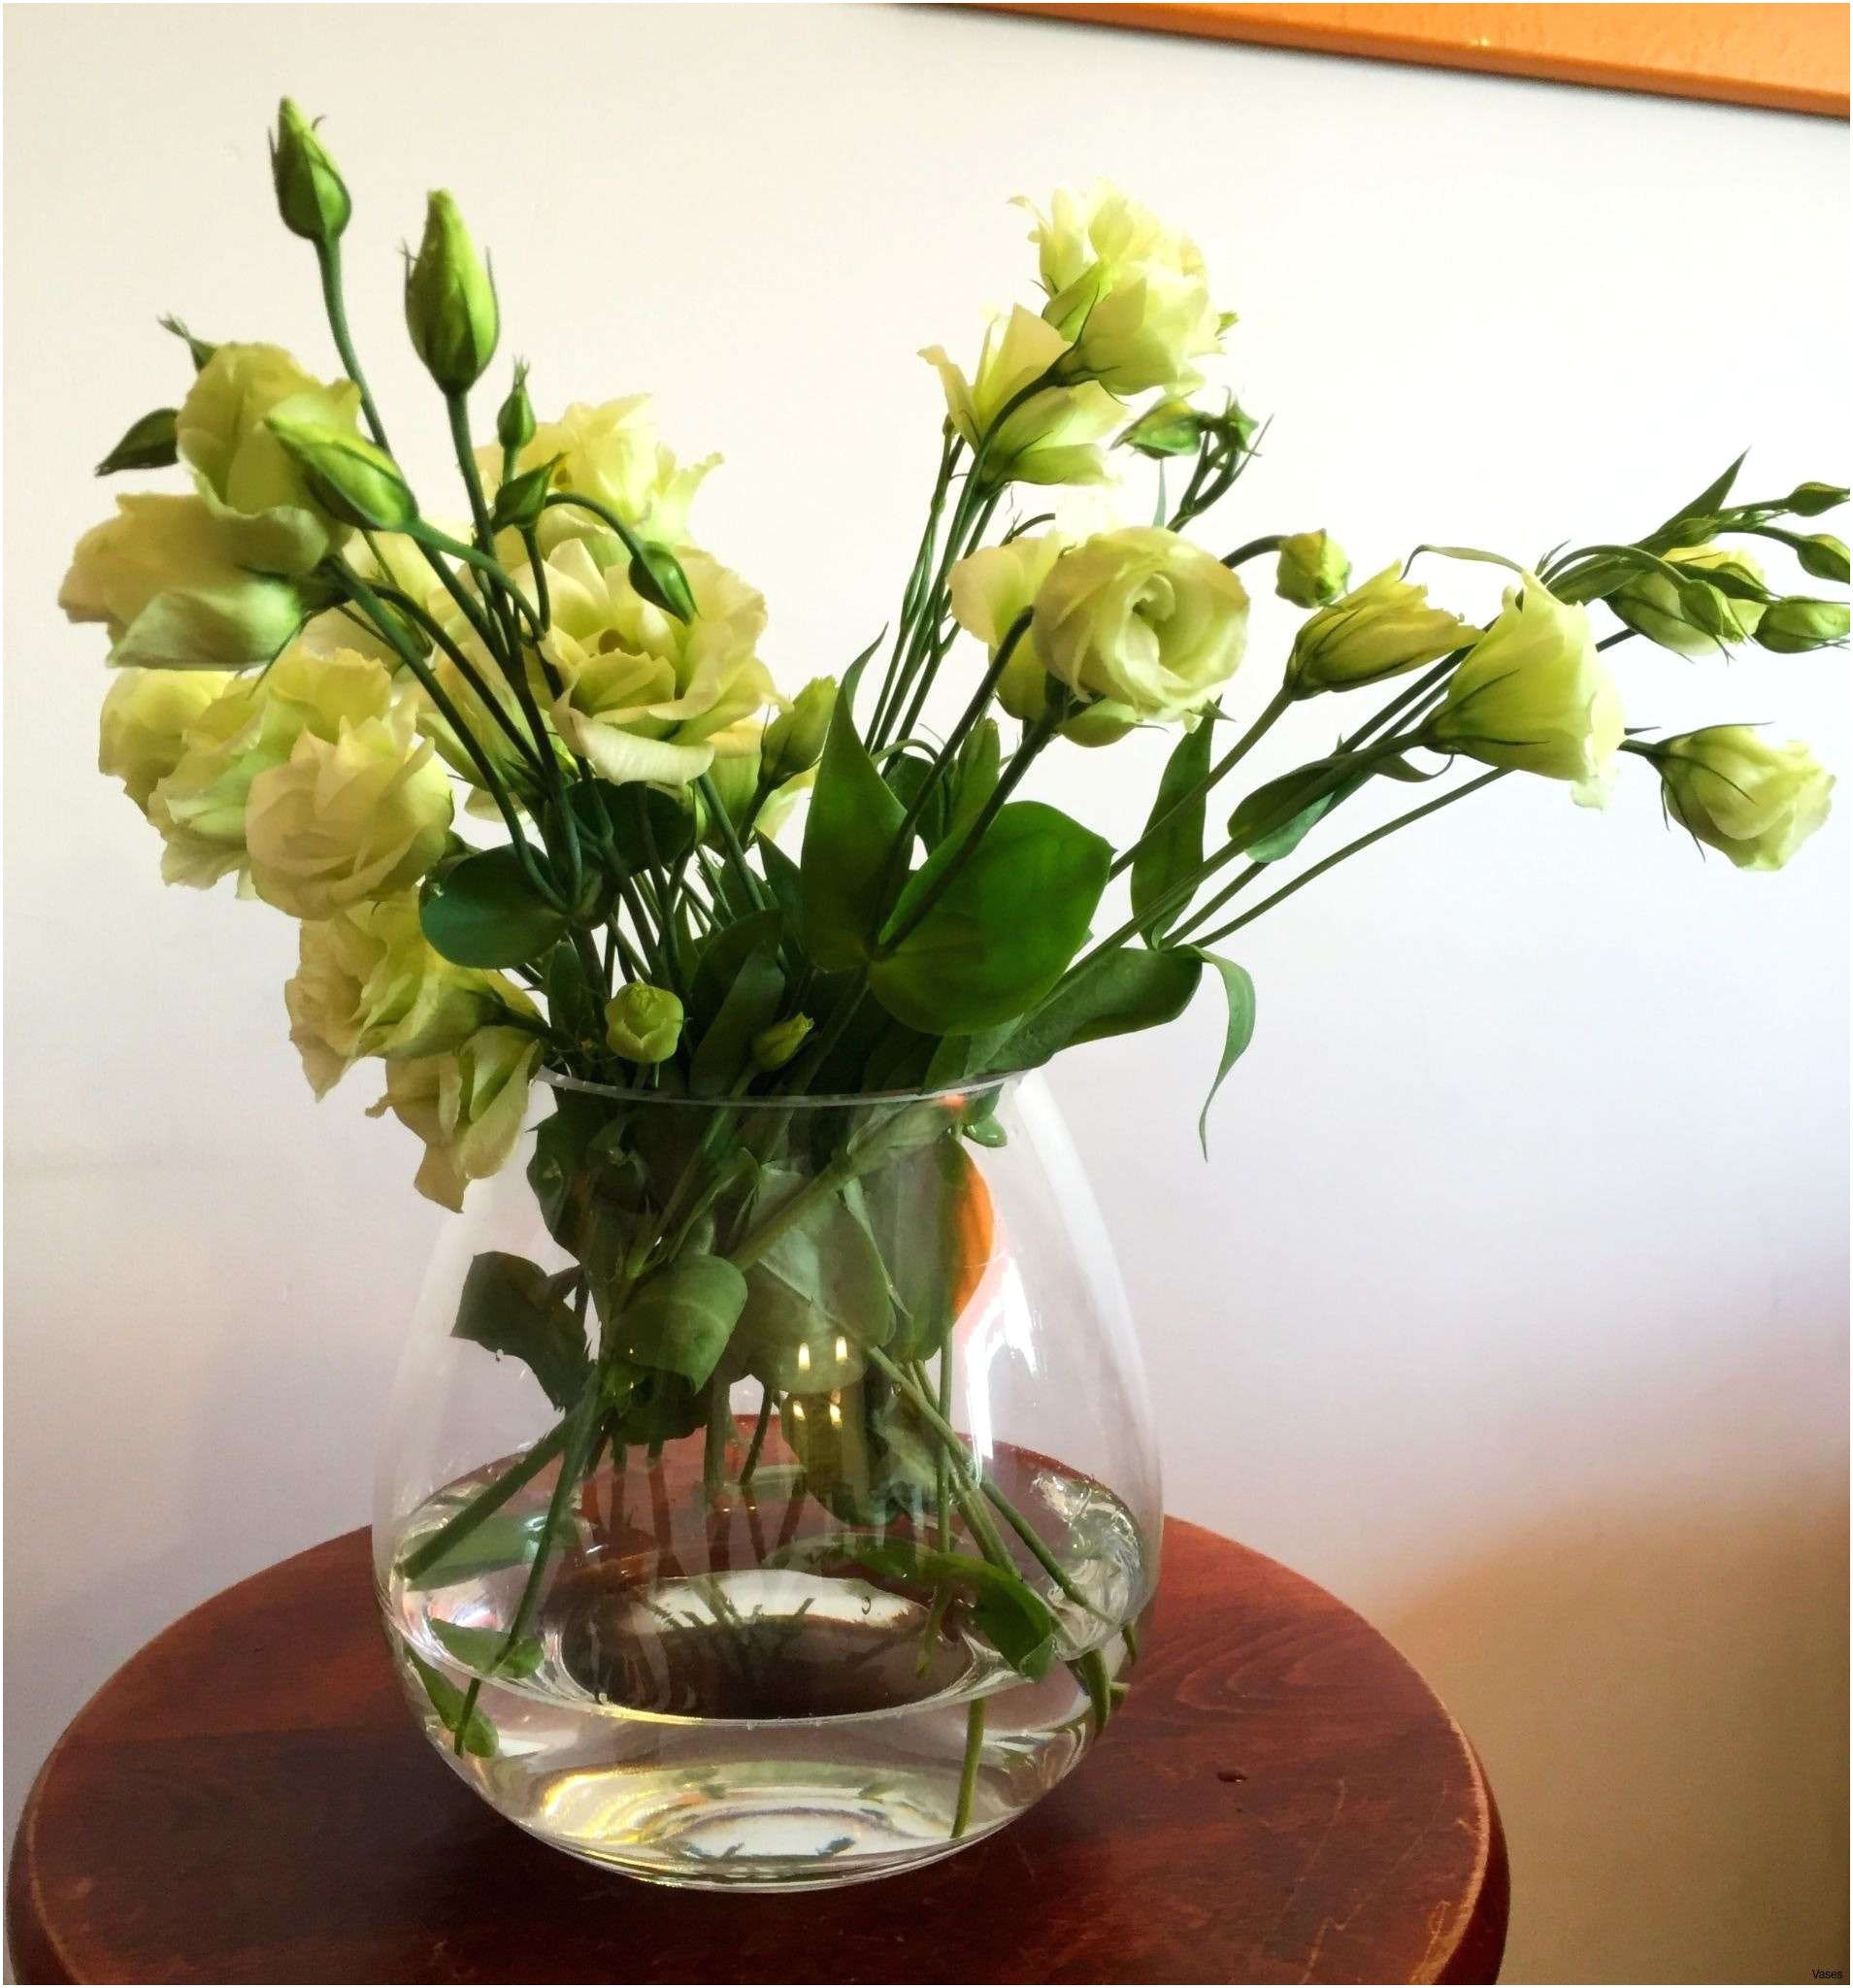 Glass Flower Vases Of Tall Green Glass Vase Image Tiger Height Awful Flower Vase Table 04h Inside Tall Green Glass Vase Image Tiger Height Awful Flower Vase Table 04h Vases Tablei 0d Clipart